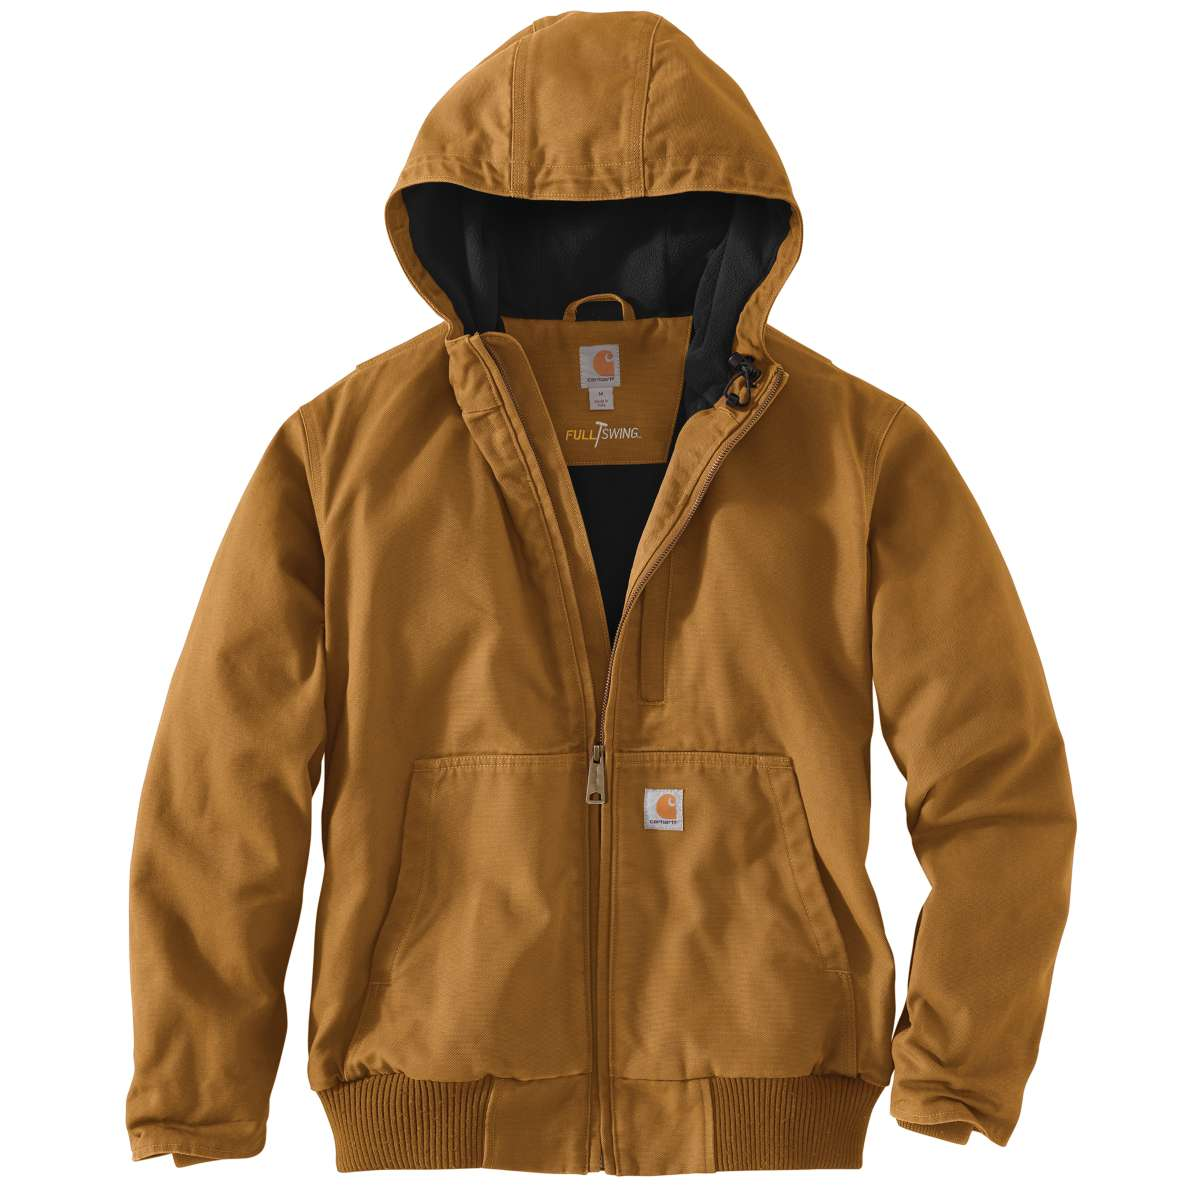 Carhartt Men's Full Swing Armstrong Active Jacket,  Extended Sizes - Brown, 4XL